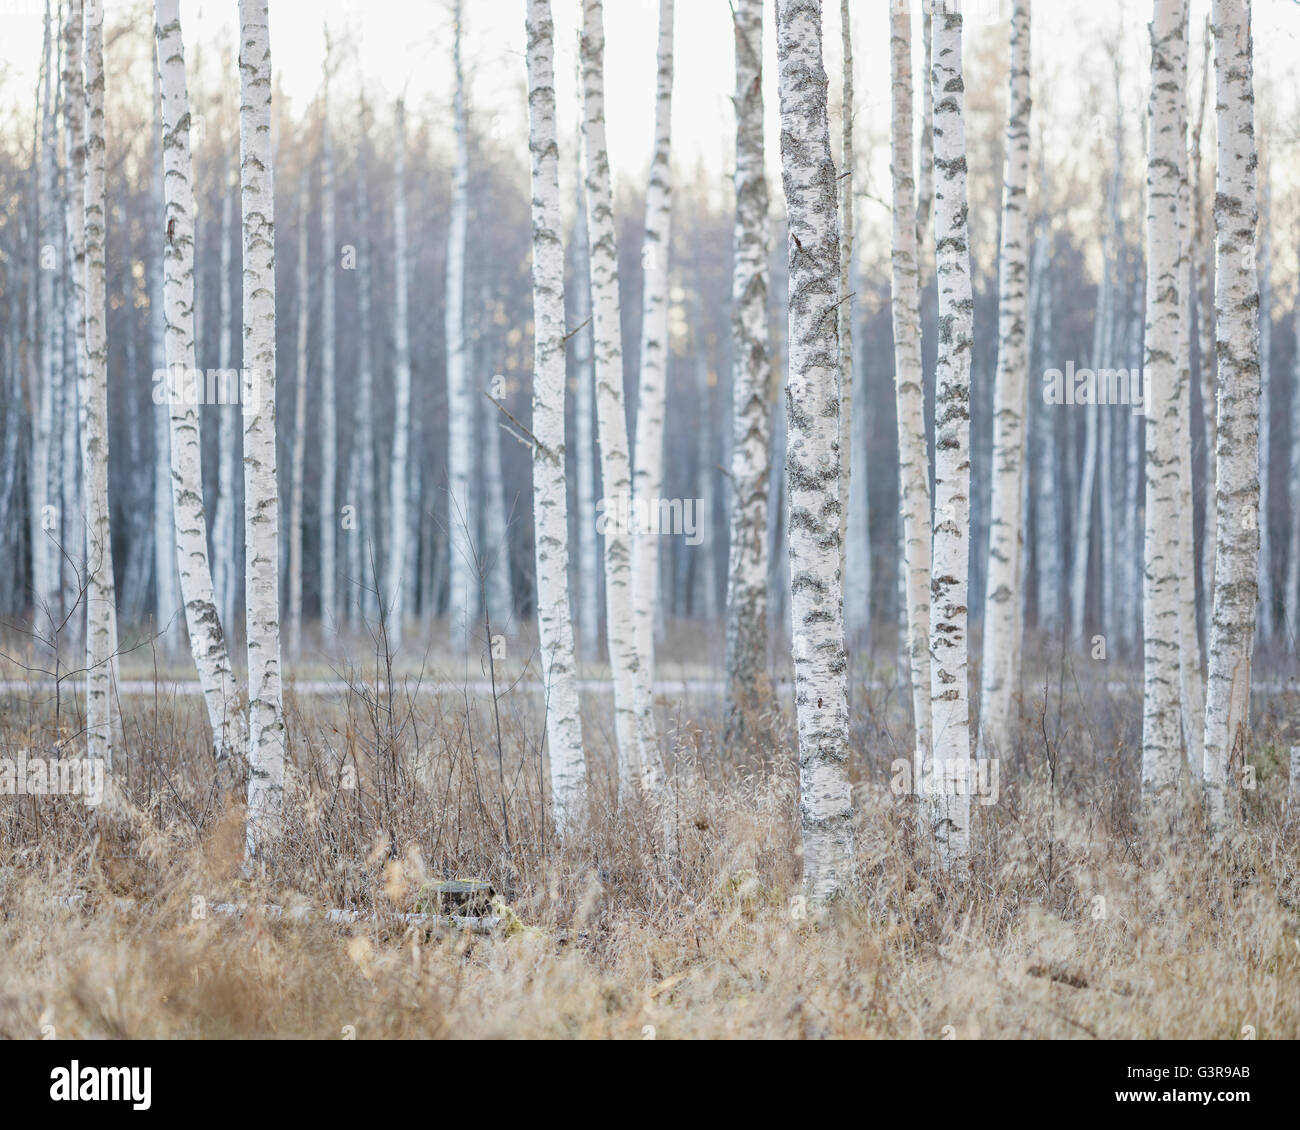 Sweden, Dalarna, Birch trees in autumn forest - Stock Image